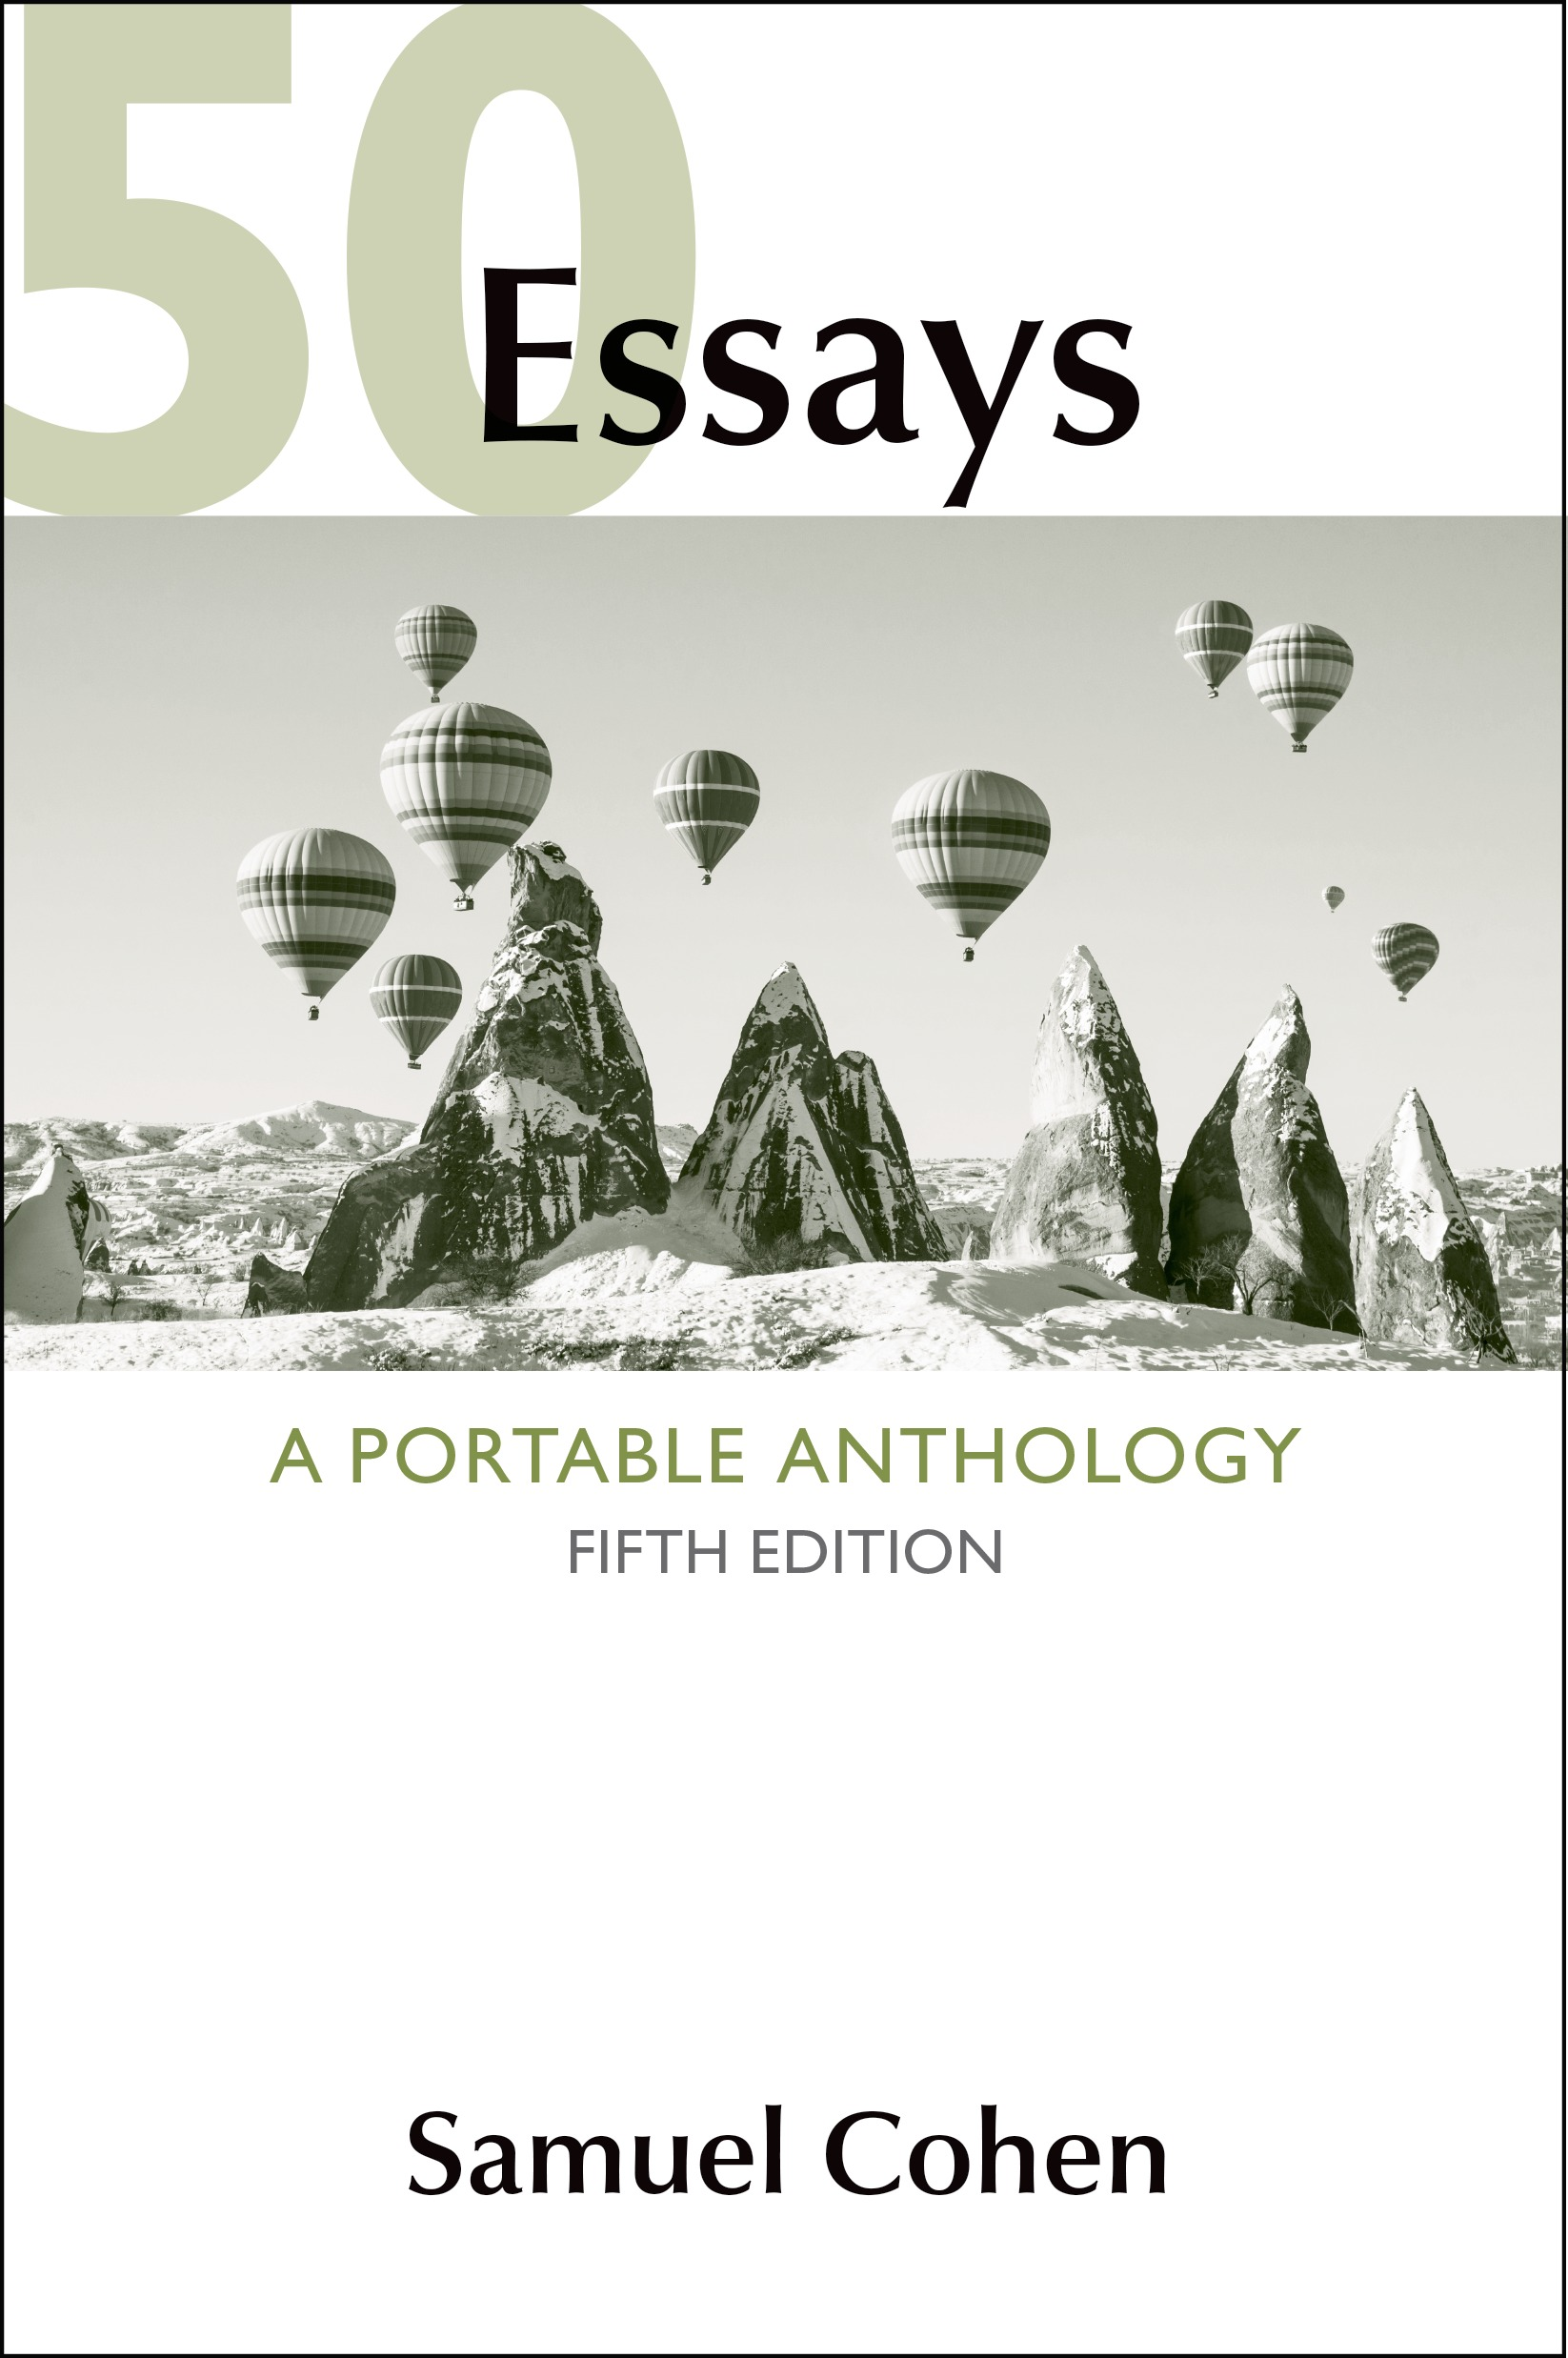 012 Real Essays With Readings 5th Edition Essay Wonderful Answer Key Online Ebook Full